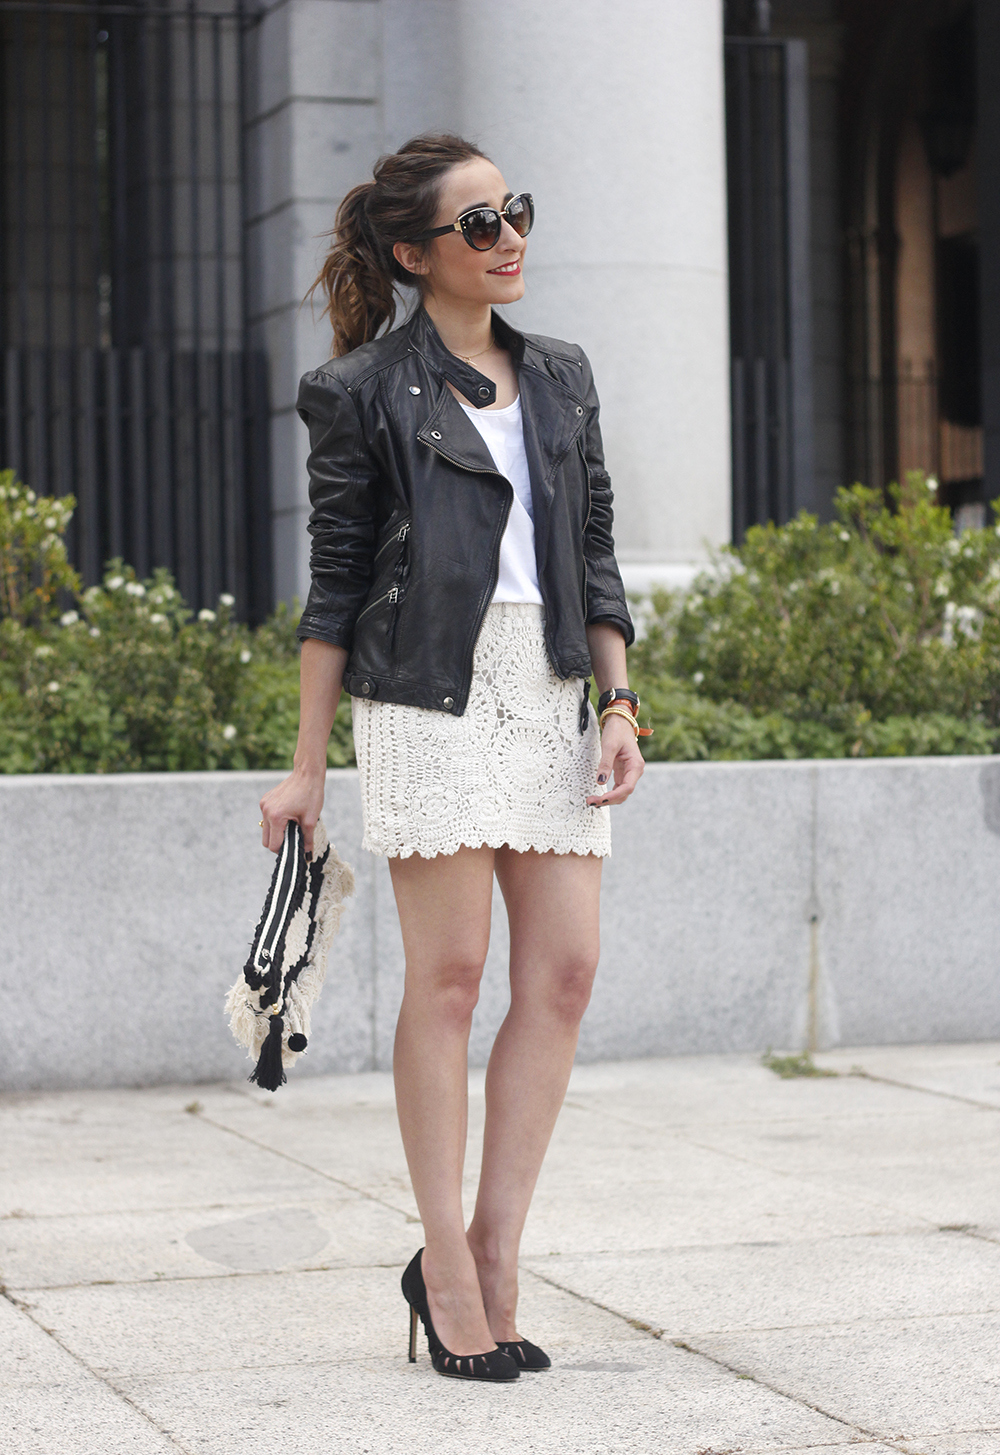 crochet skirt leather jacket black heels sunnies spring outfit style15